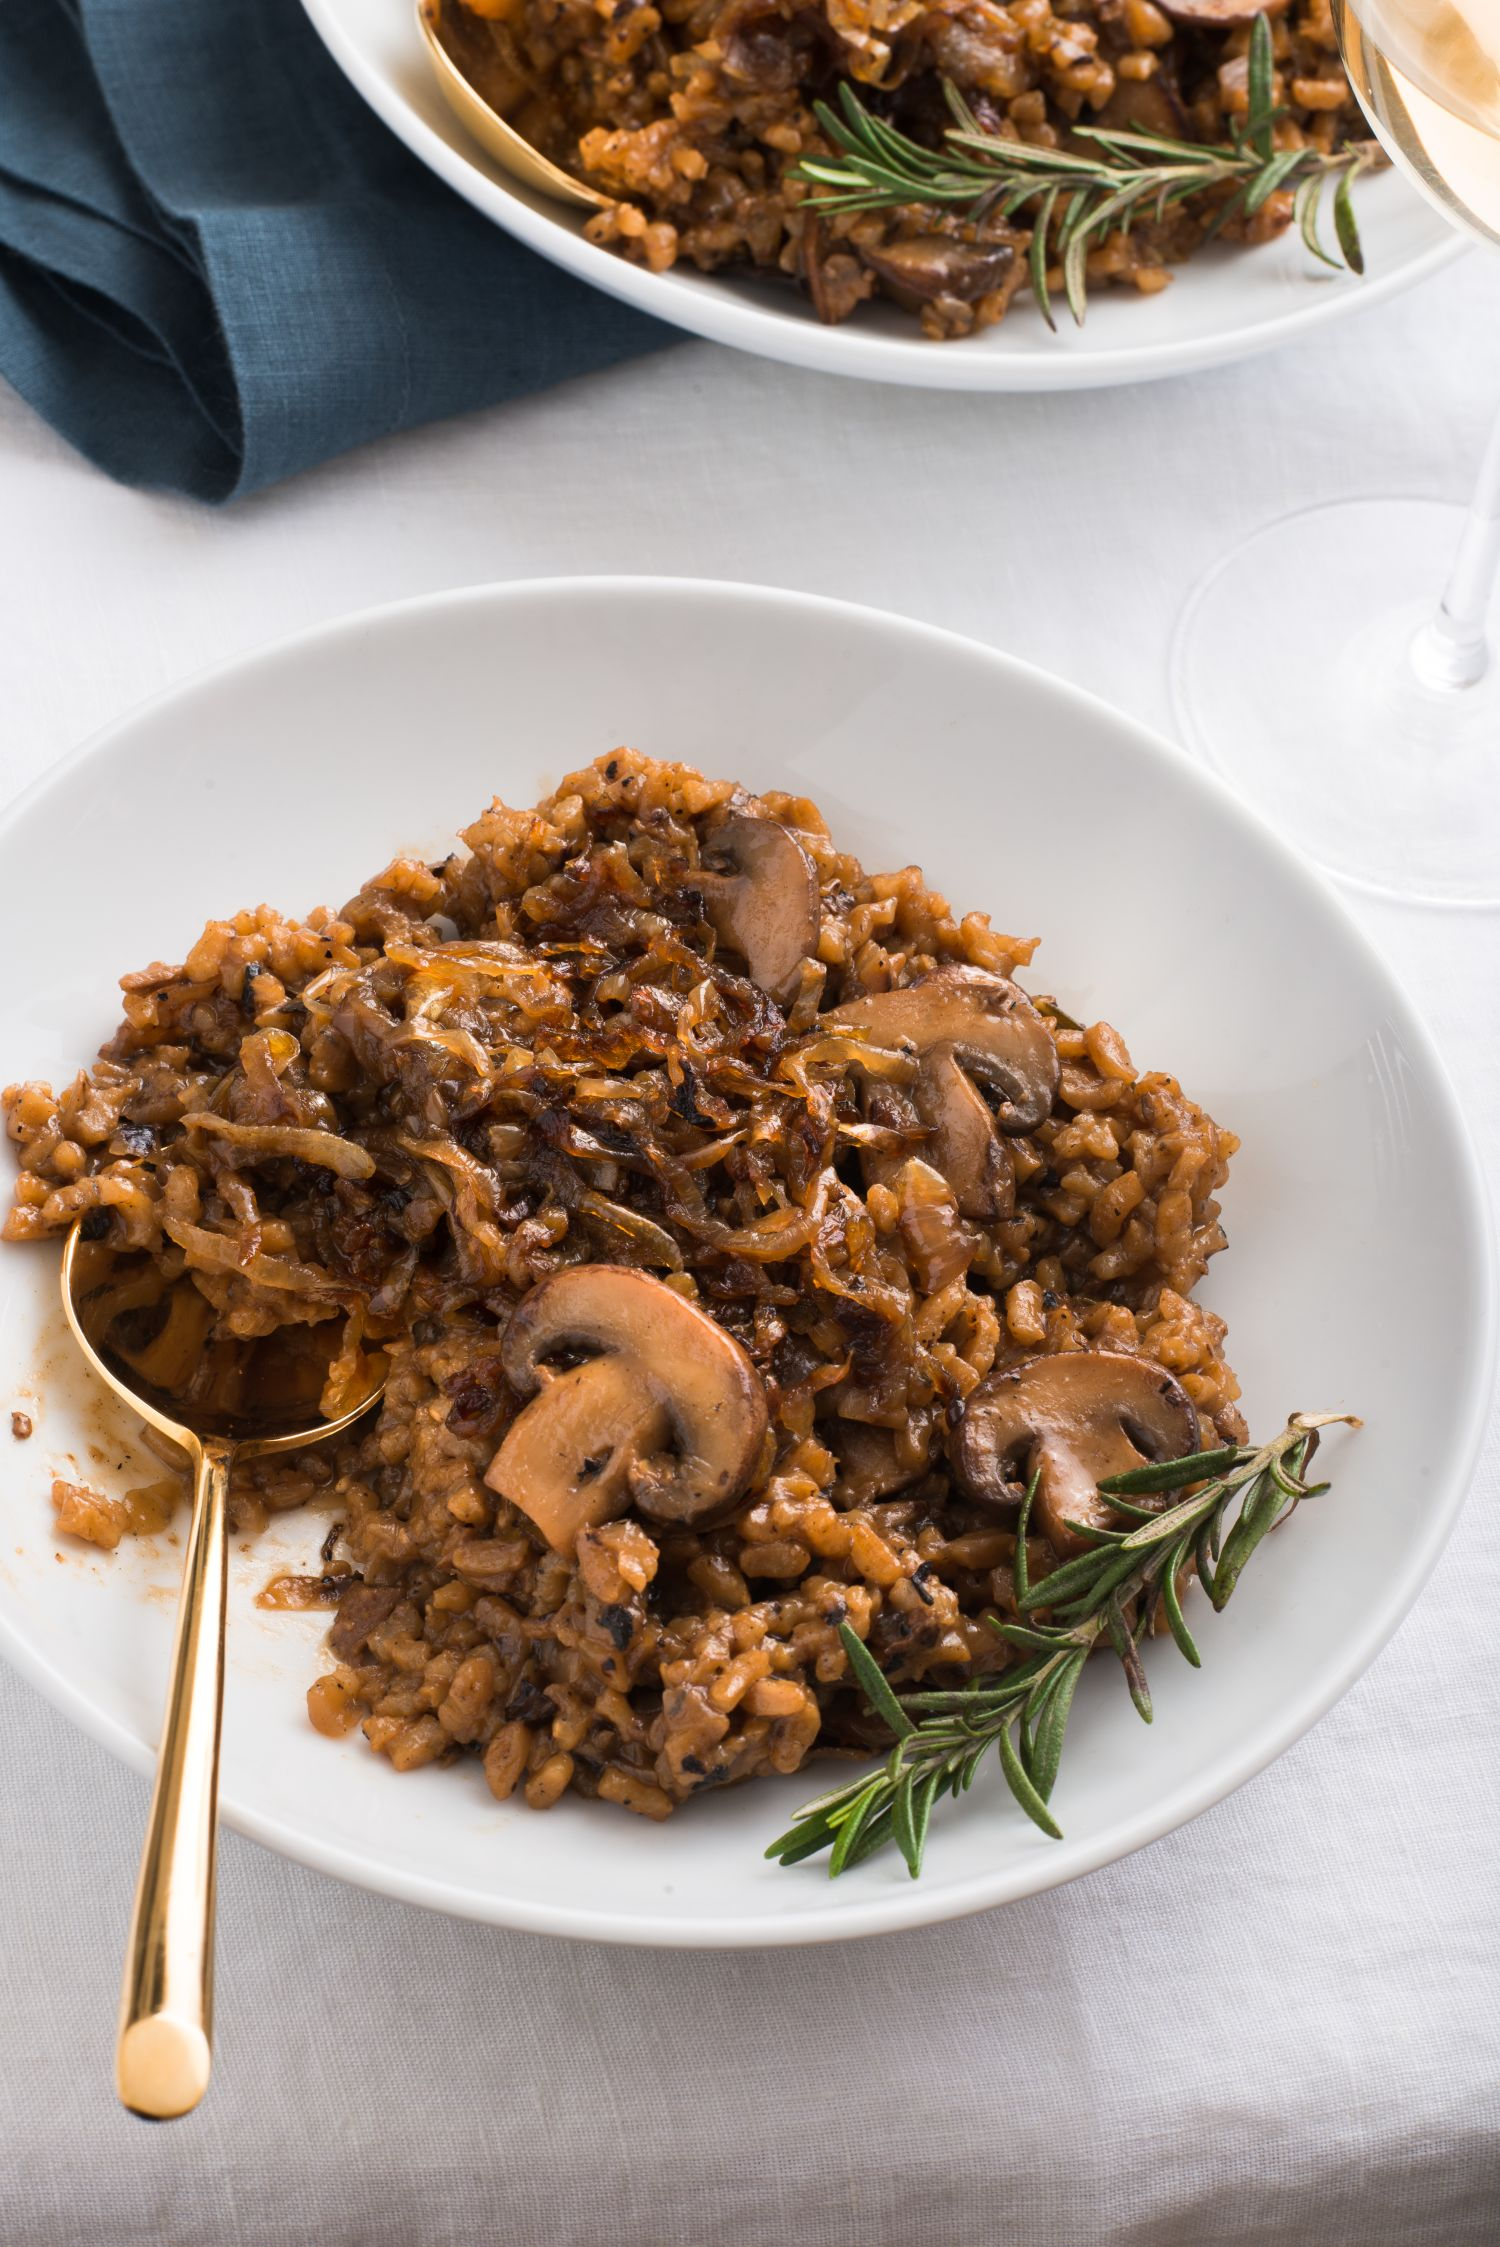 Baked Mushroom Risotto Is the Sexiest Vegan Dinner We Know